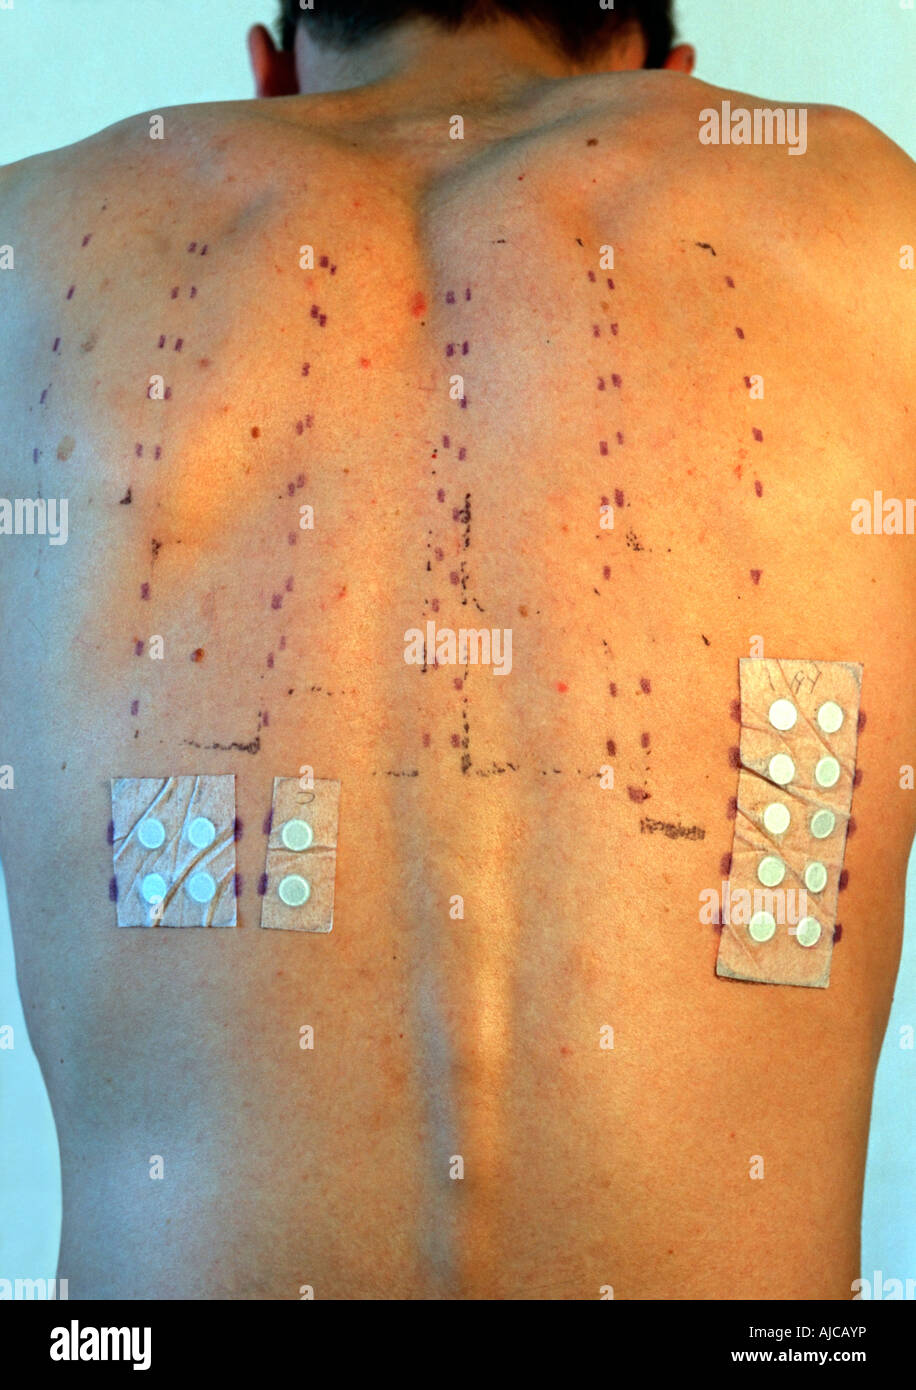 30 Year Old Man Showing His Back Marked From Allergy Test